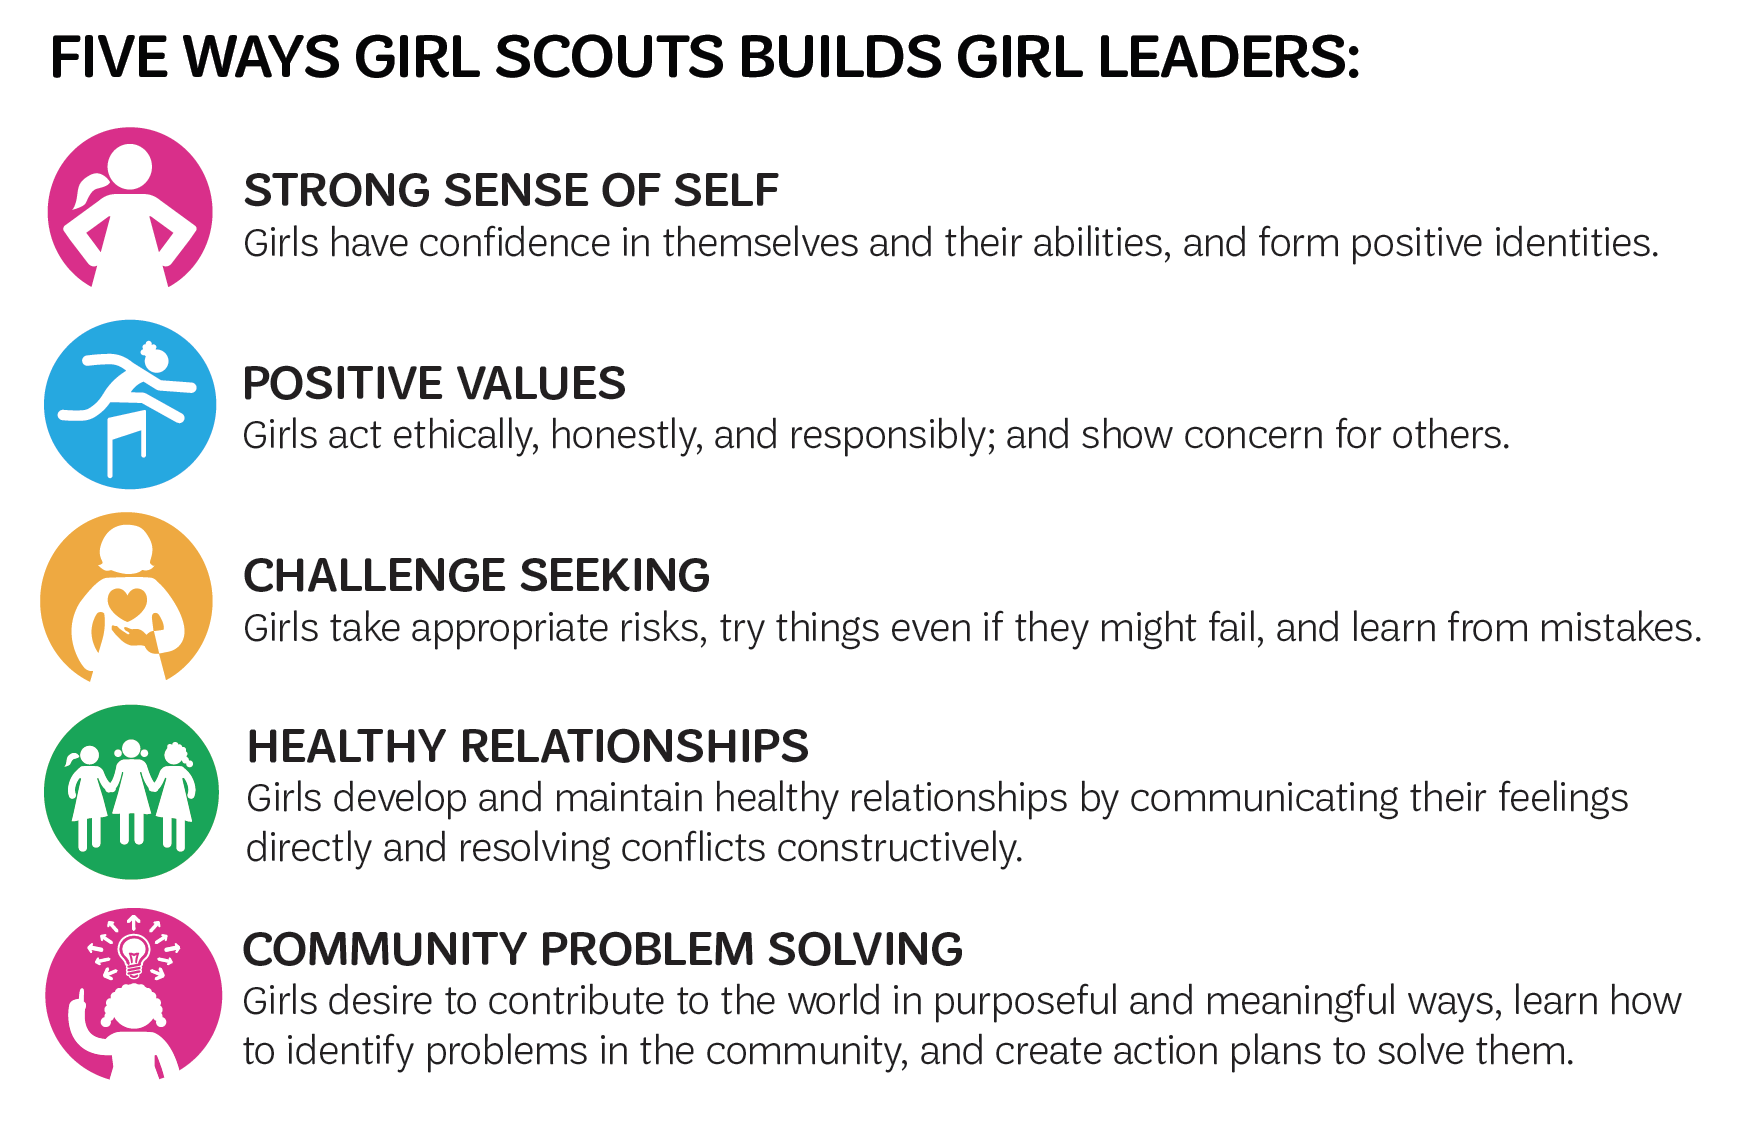 Girl scouts builds leaders